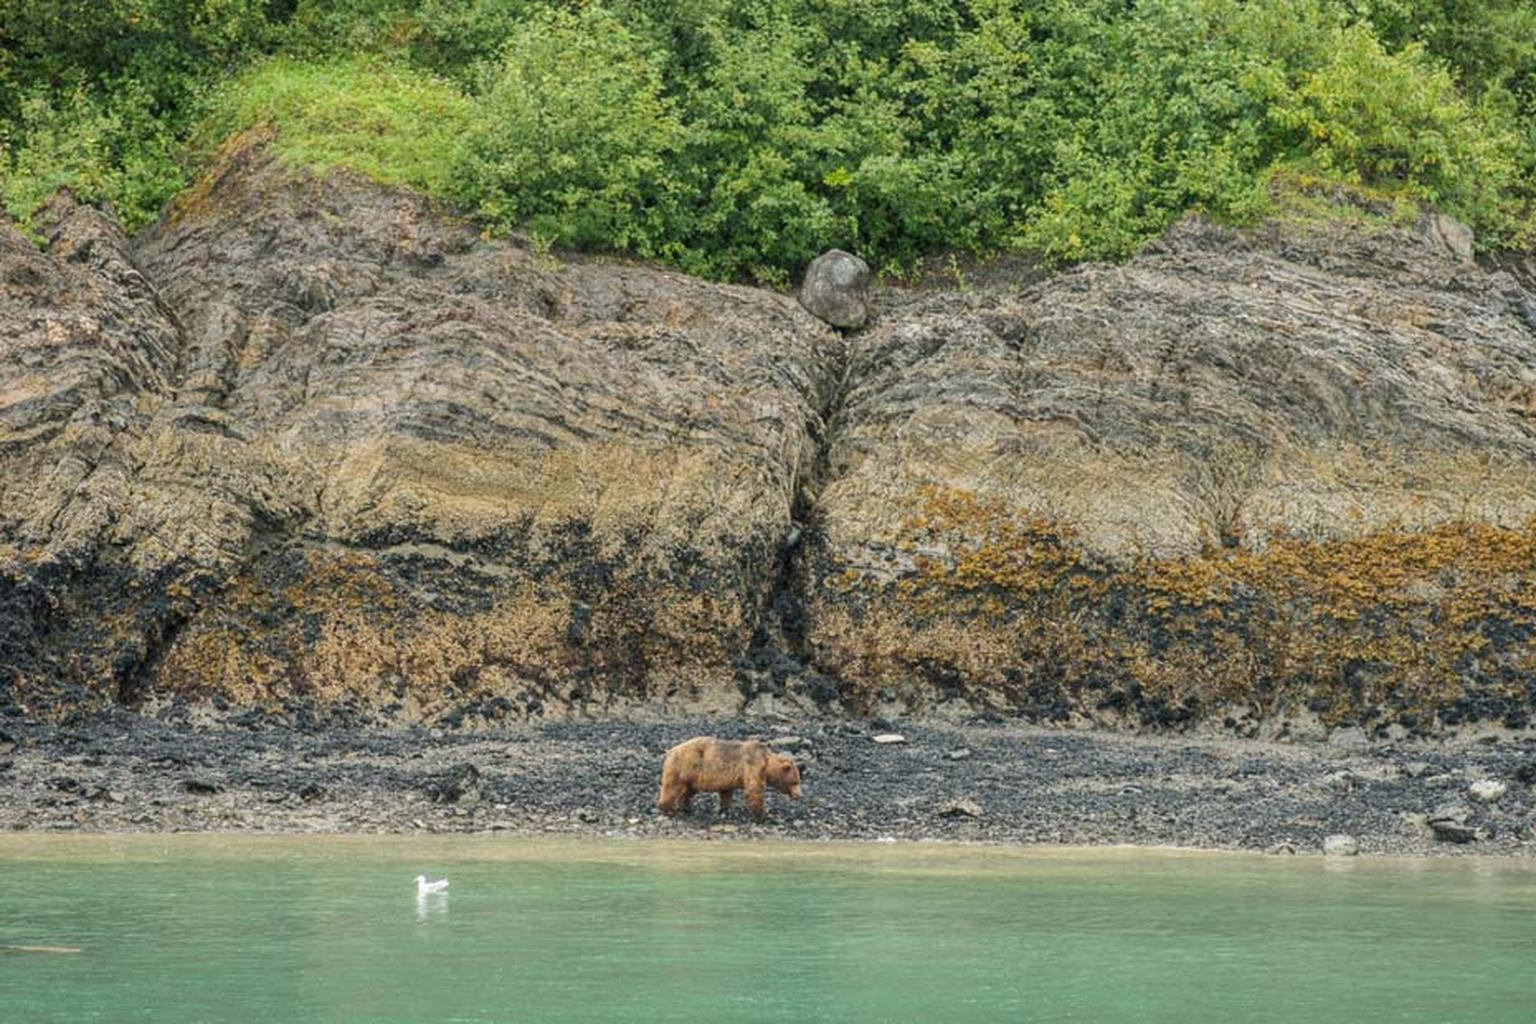 Glacier Bay National Park is home to many species, including the brown bear, which is free to roam the immense forests and drink from the unpolluted freshwater lakes.